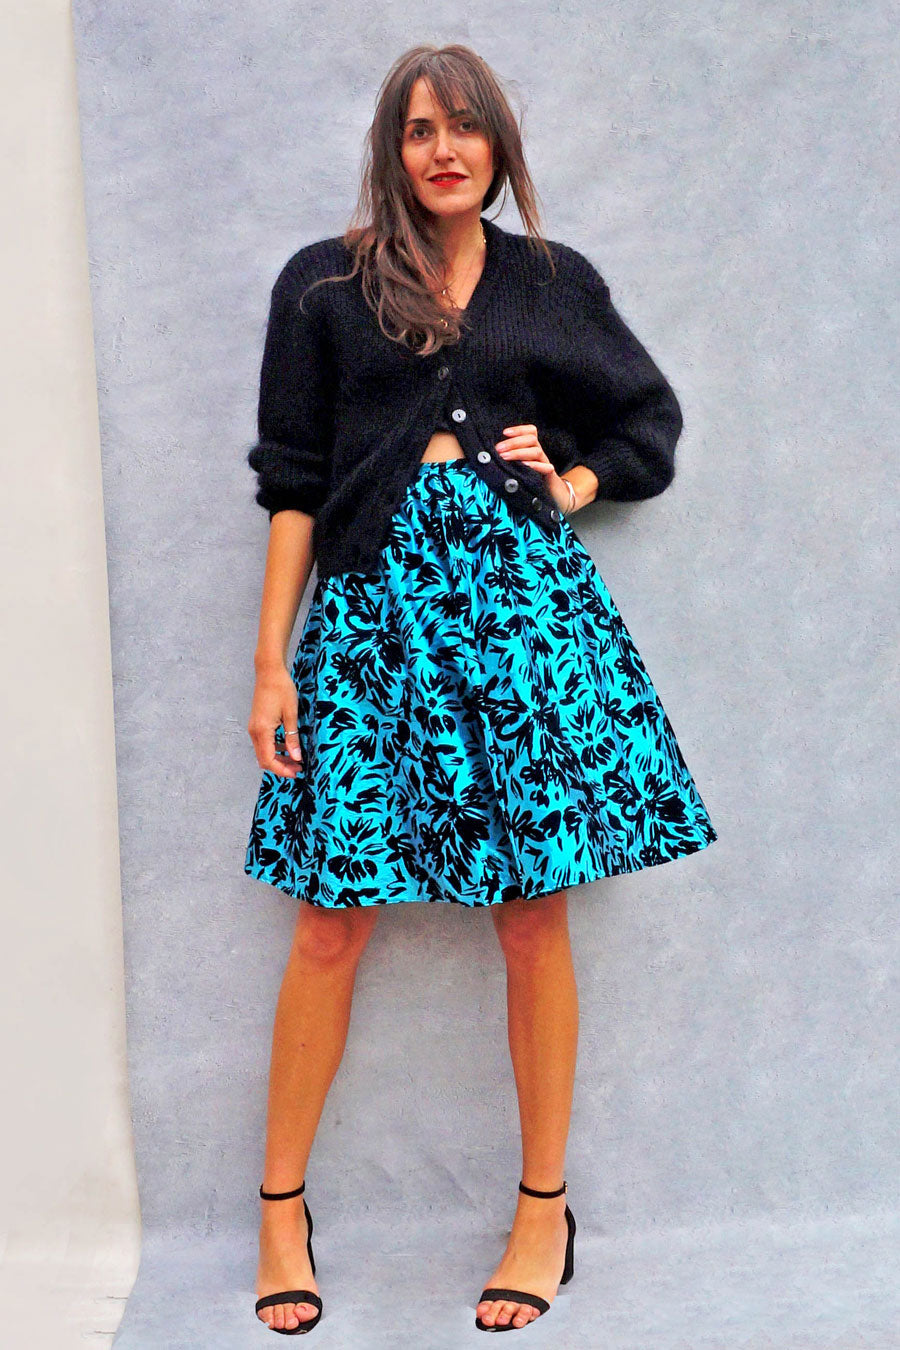 80s Metallic Blue Jacquard Cocktail Skirt - Ada's Attic Vintage -